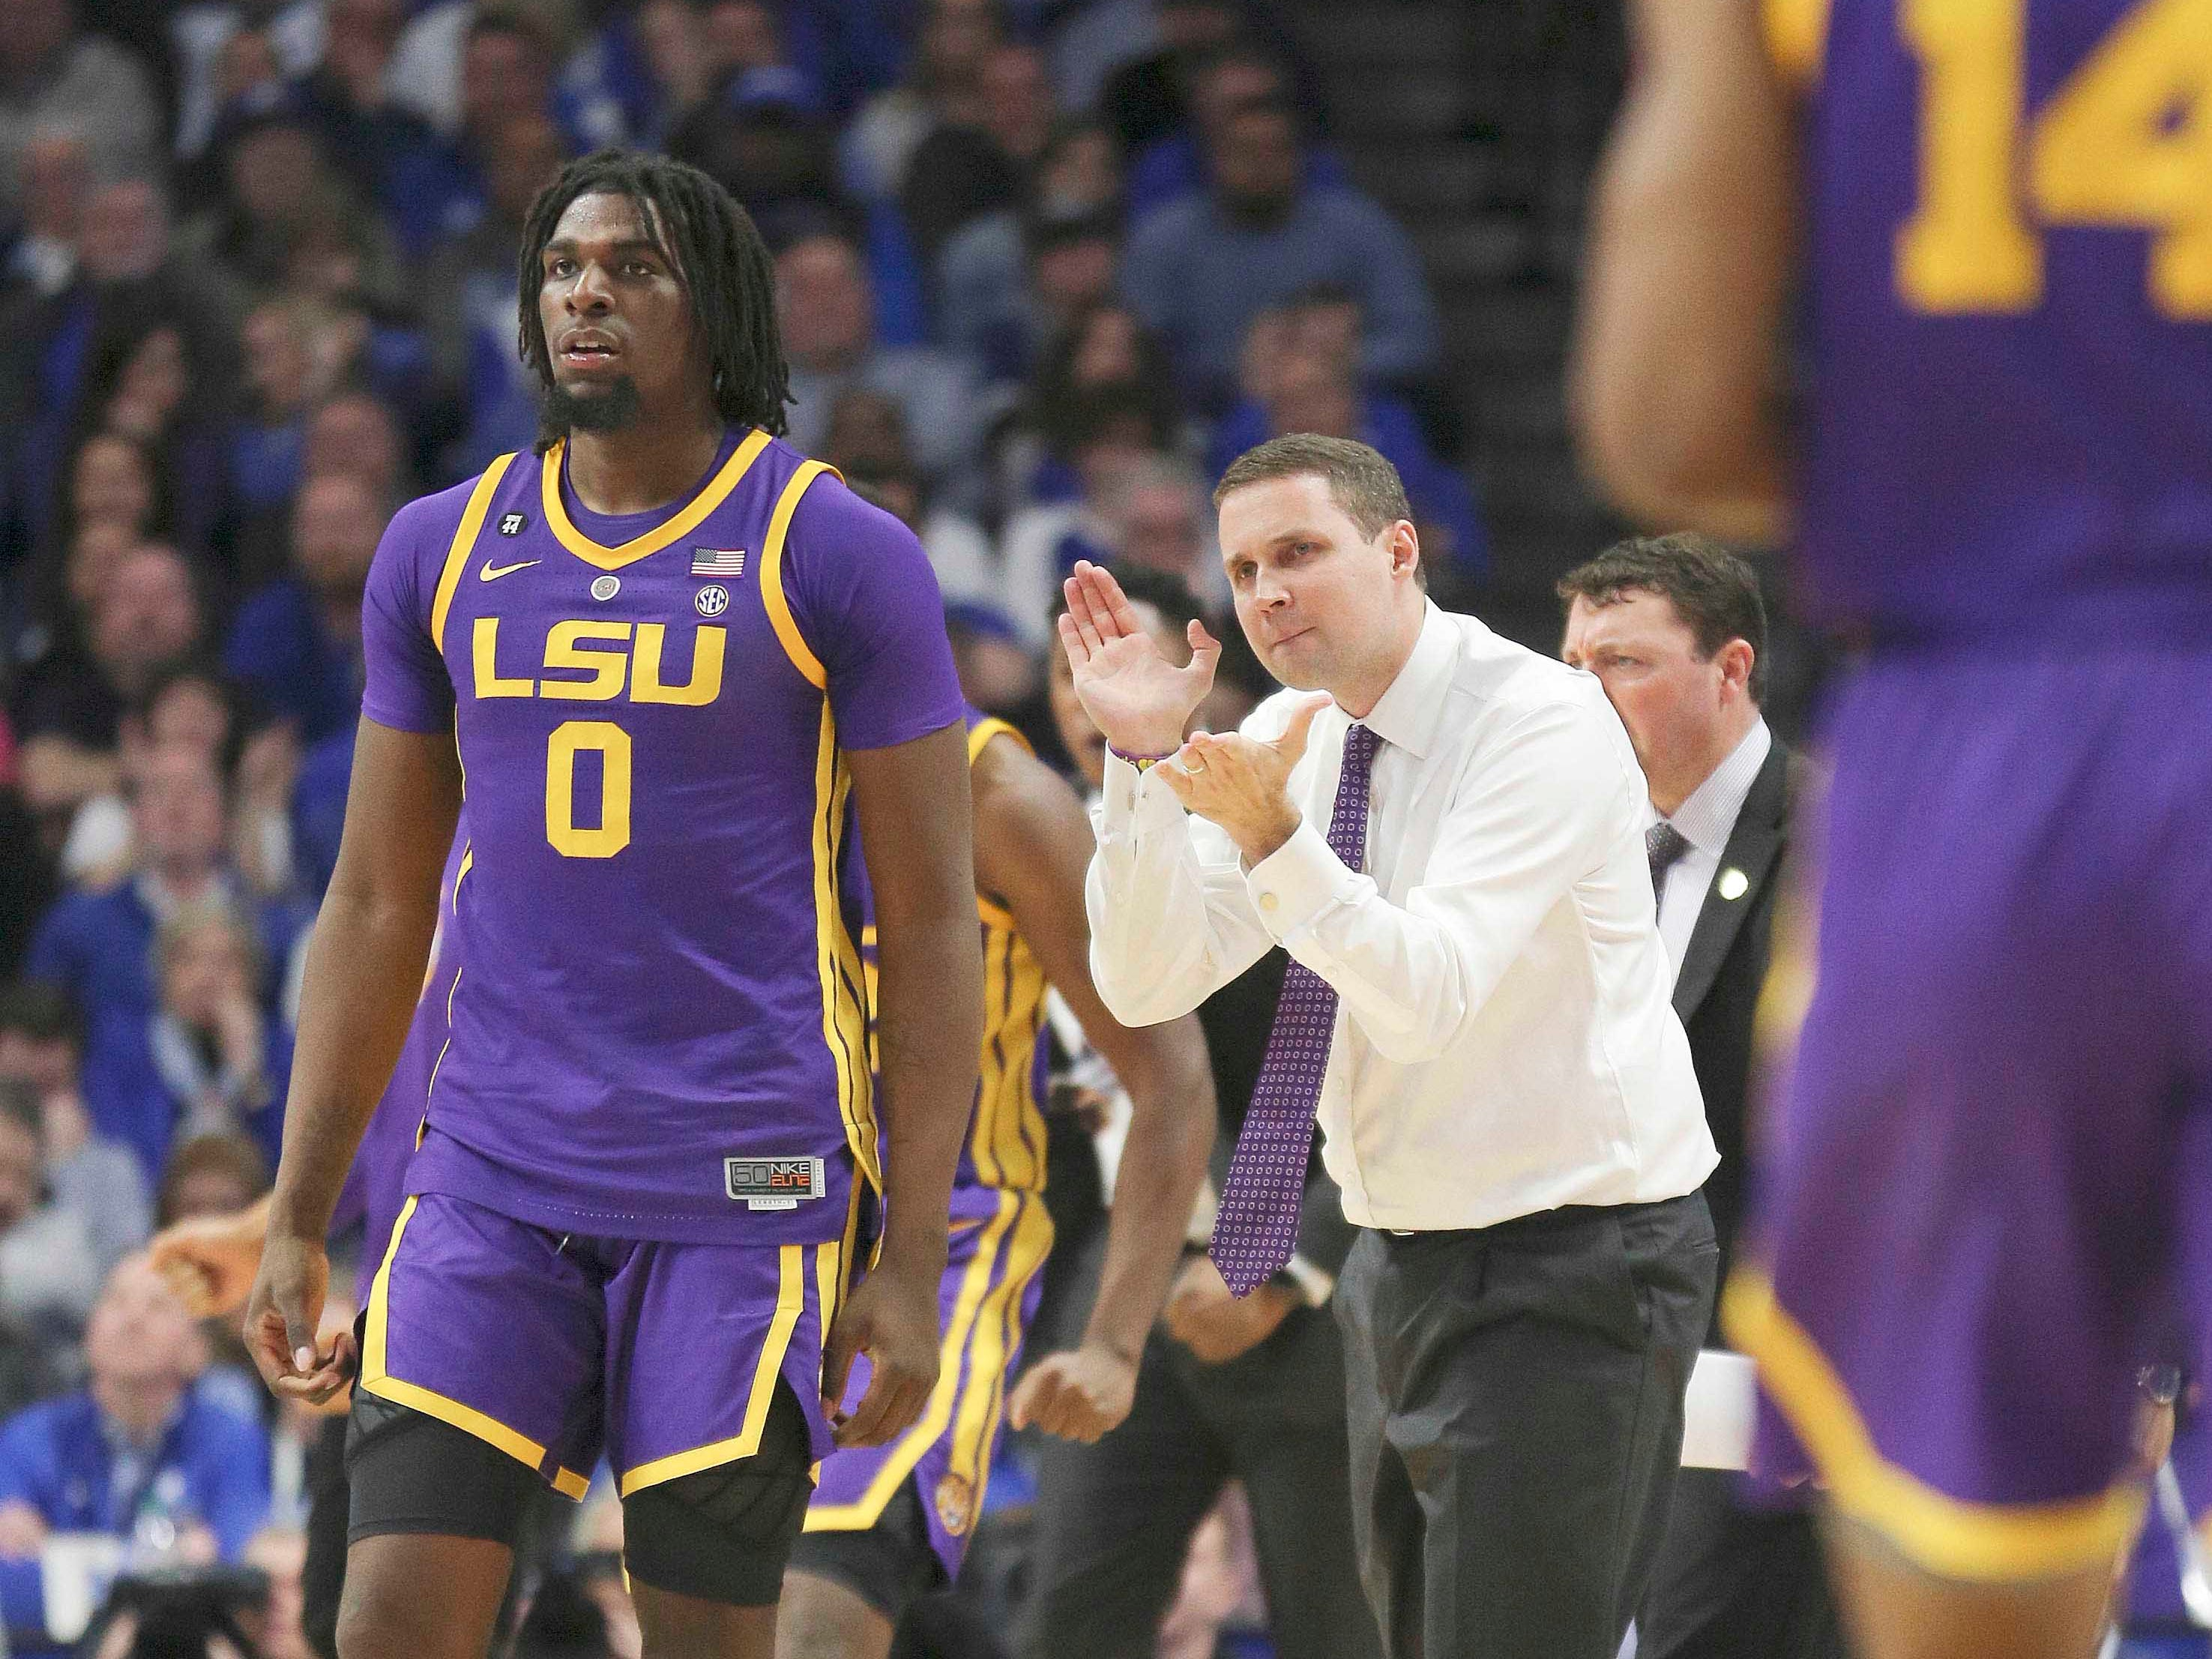 Feb 12, 2019; Lexington, KY, USA; LSU Tigers head coach Will Wade reacts along side forward Naz Reid (00) during the game against the Kentucky Wildcats in the second half at Rupp Arena. Mandatory Credit: Mark Zerof-USA TODAY Sports